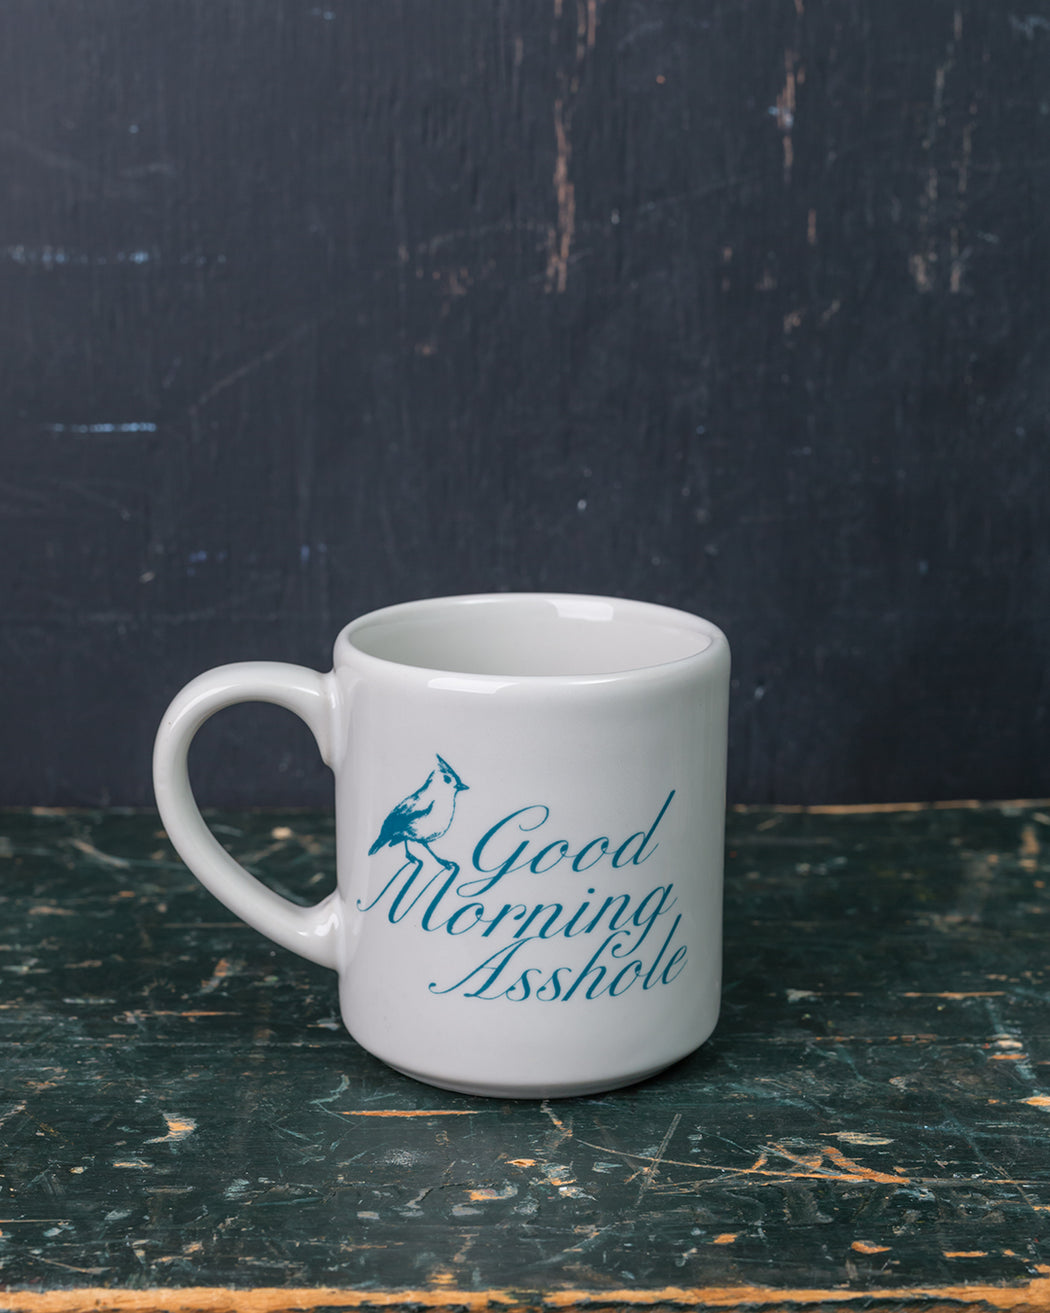 Good Morning Asshole Mug Fishs Eddy